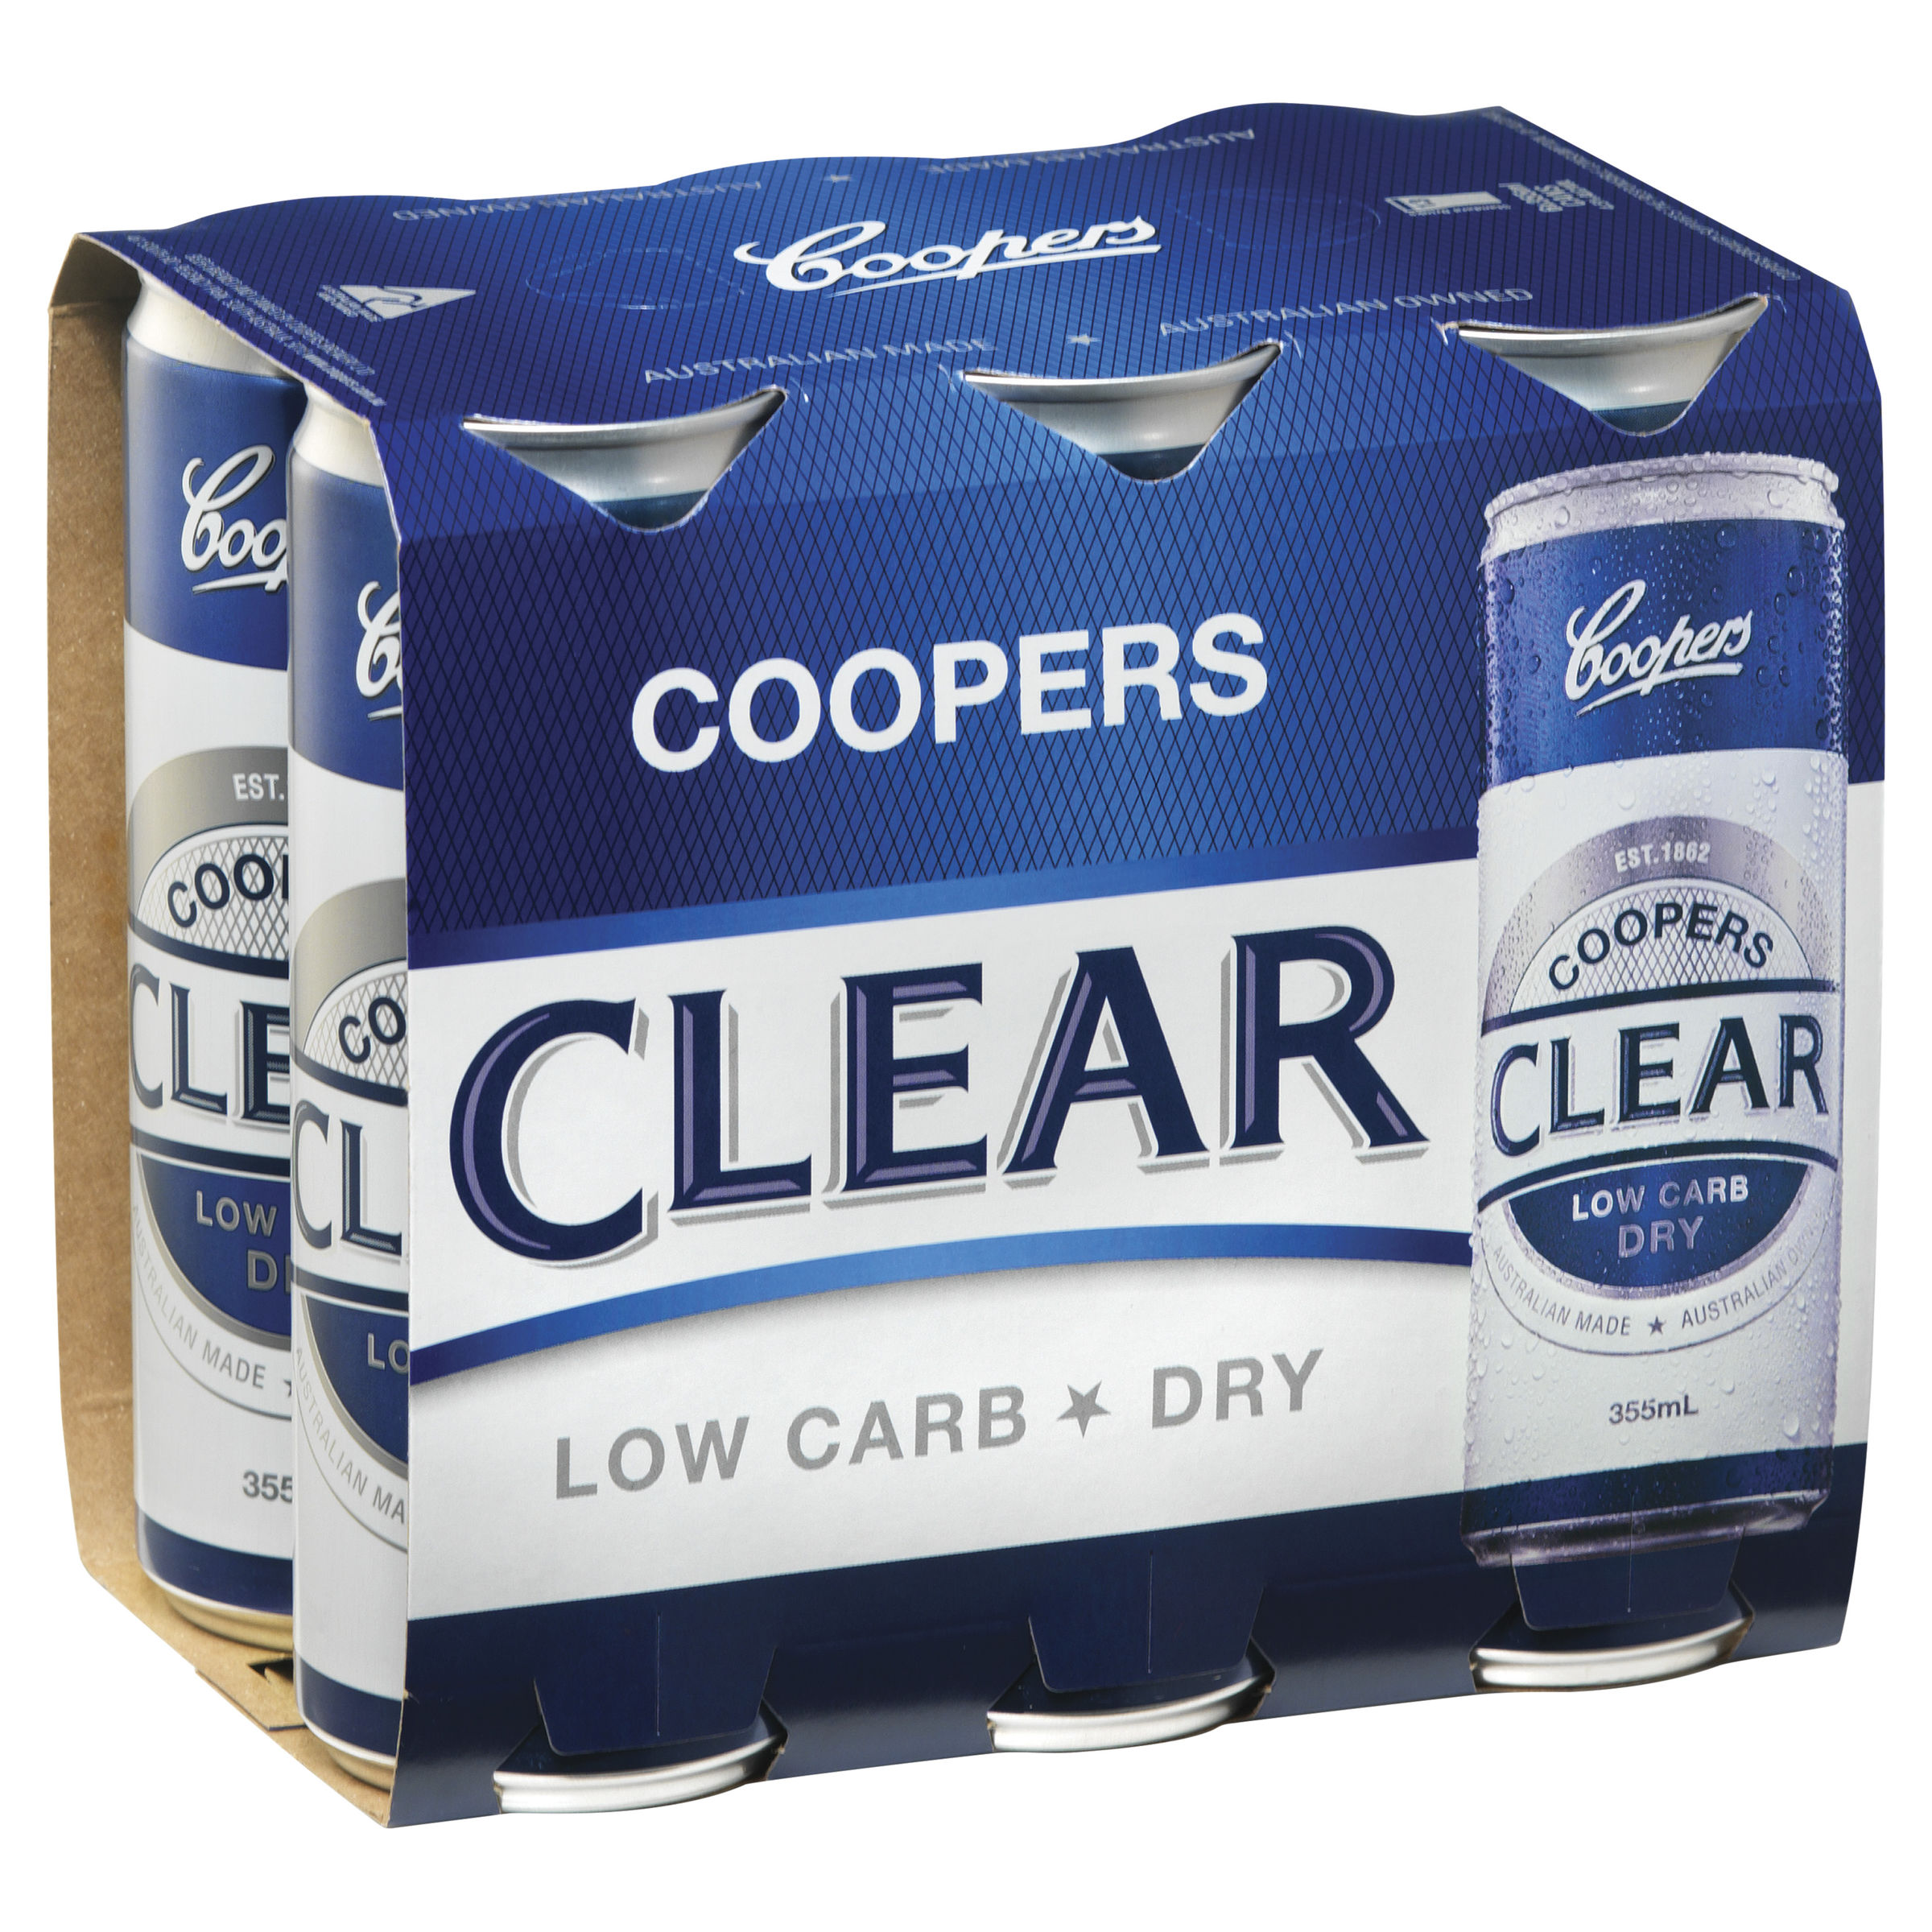 COOPERS CLEAR CANS